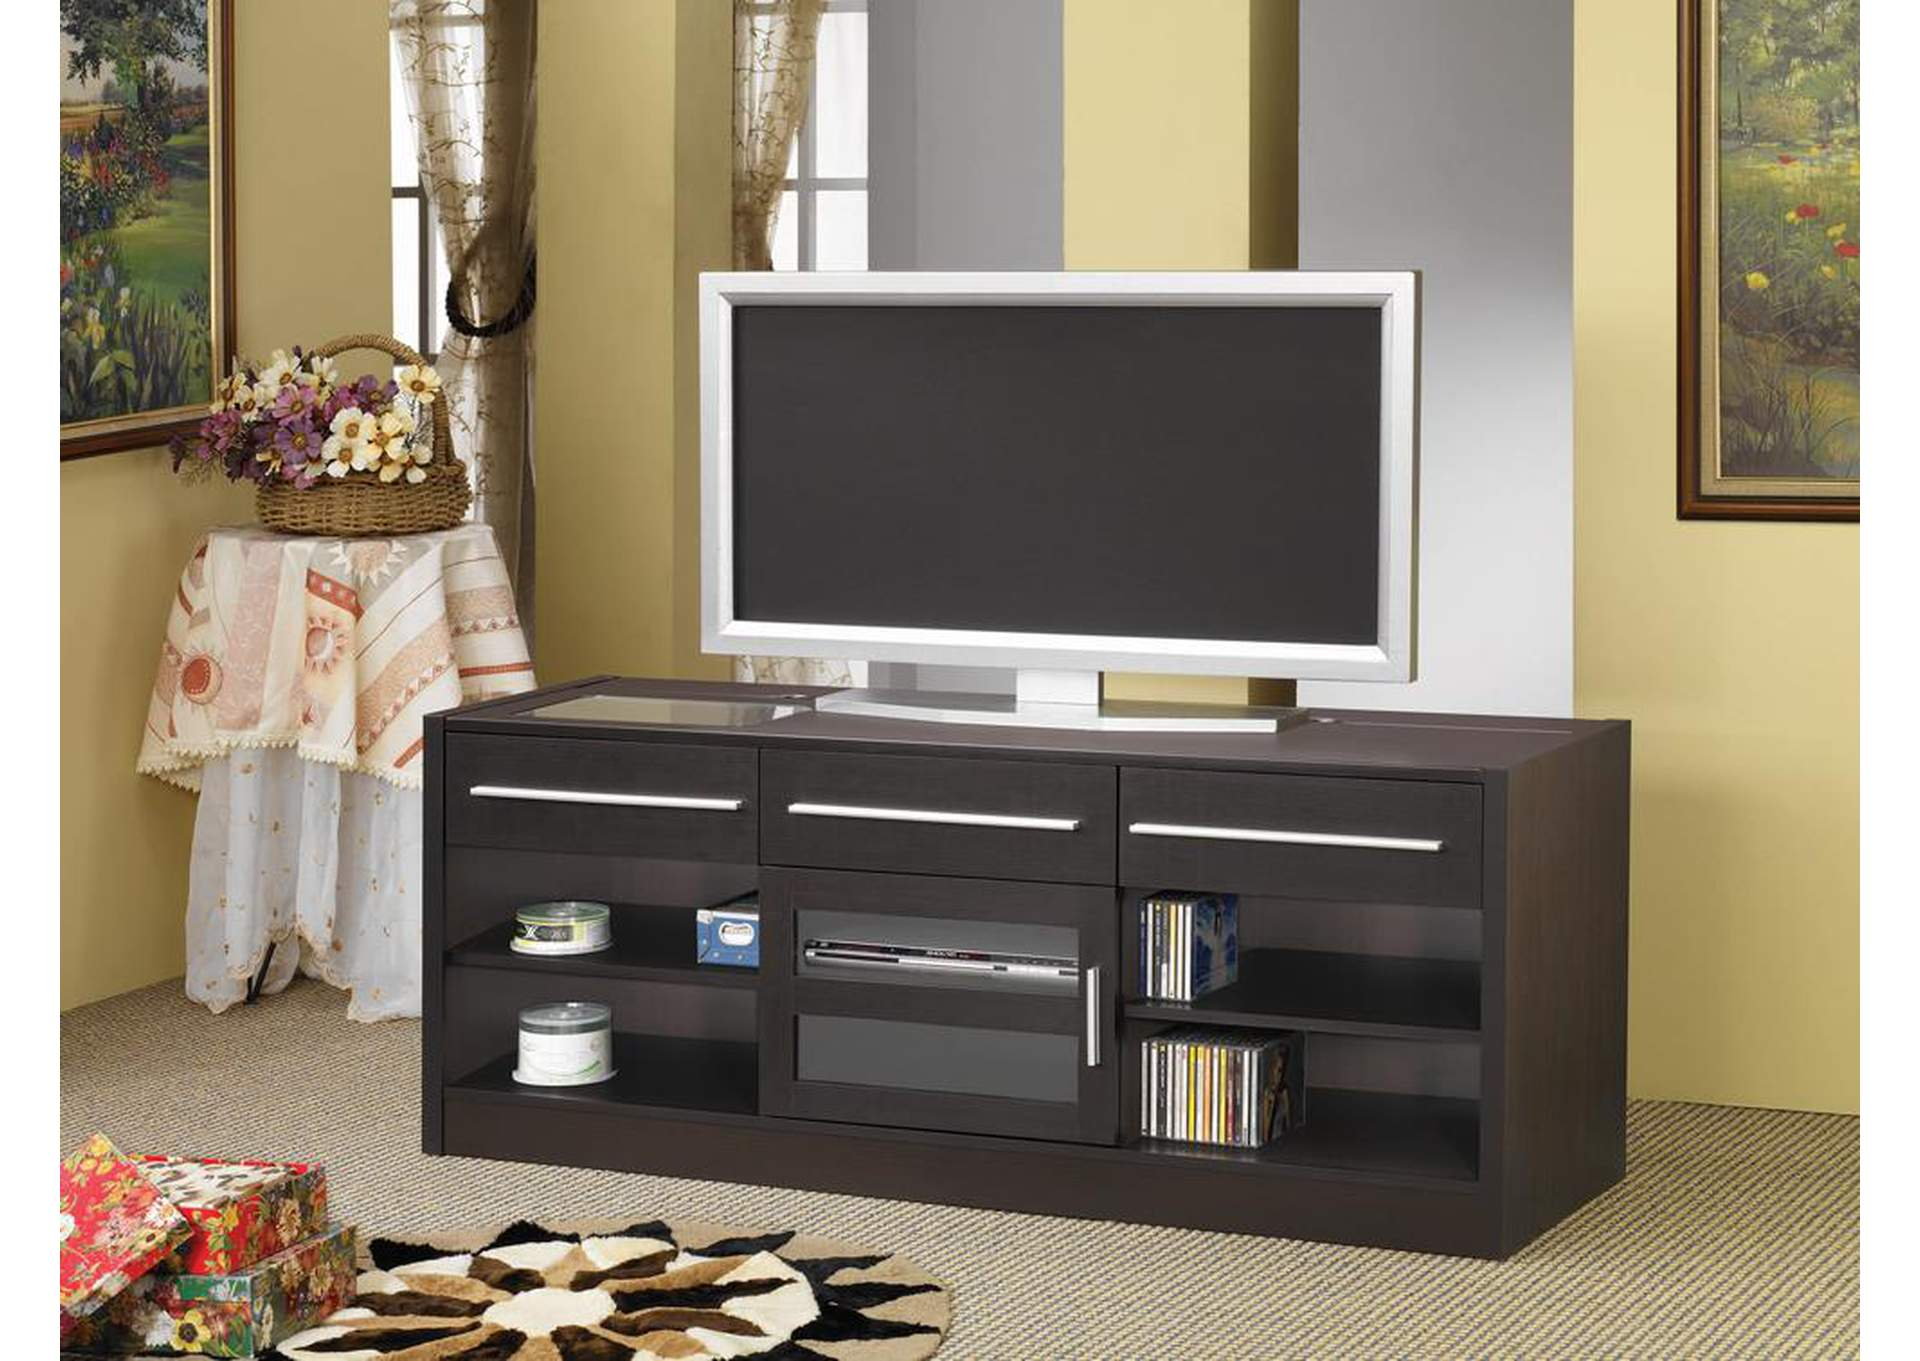 Atlantic Bedding and Furniture - Myrtle Beach SC TV Console